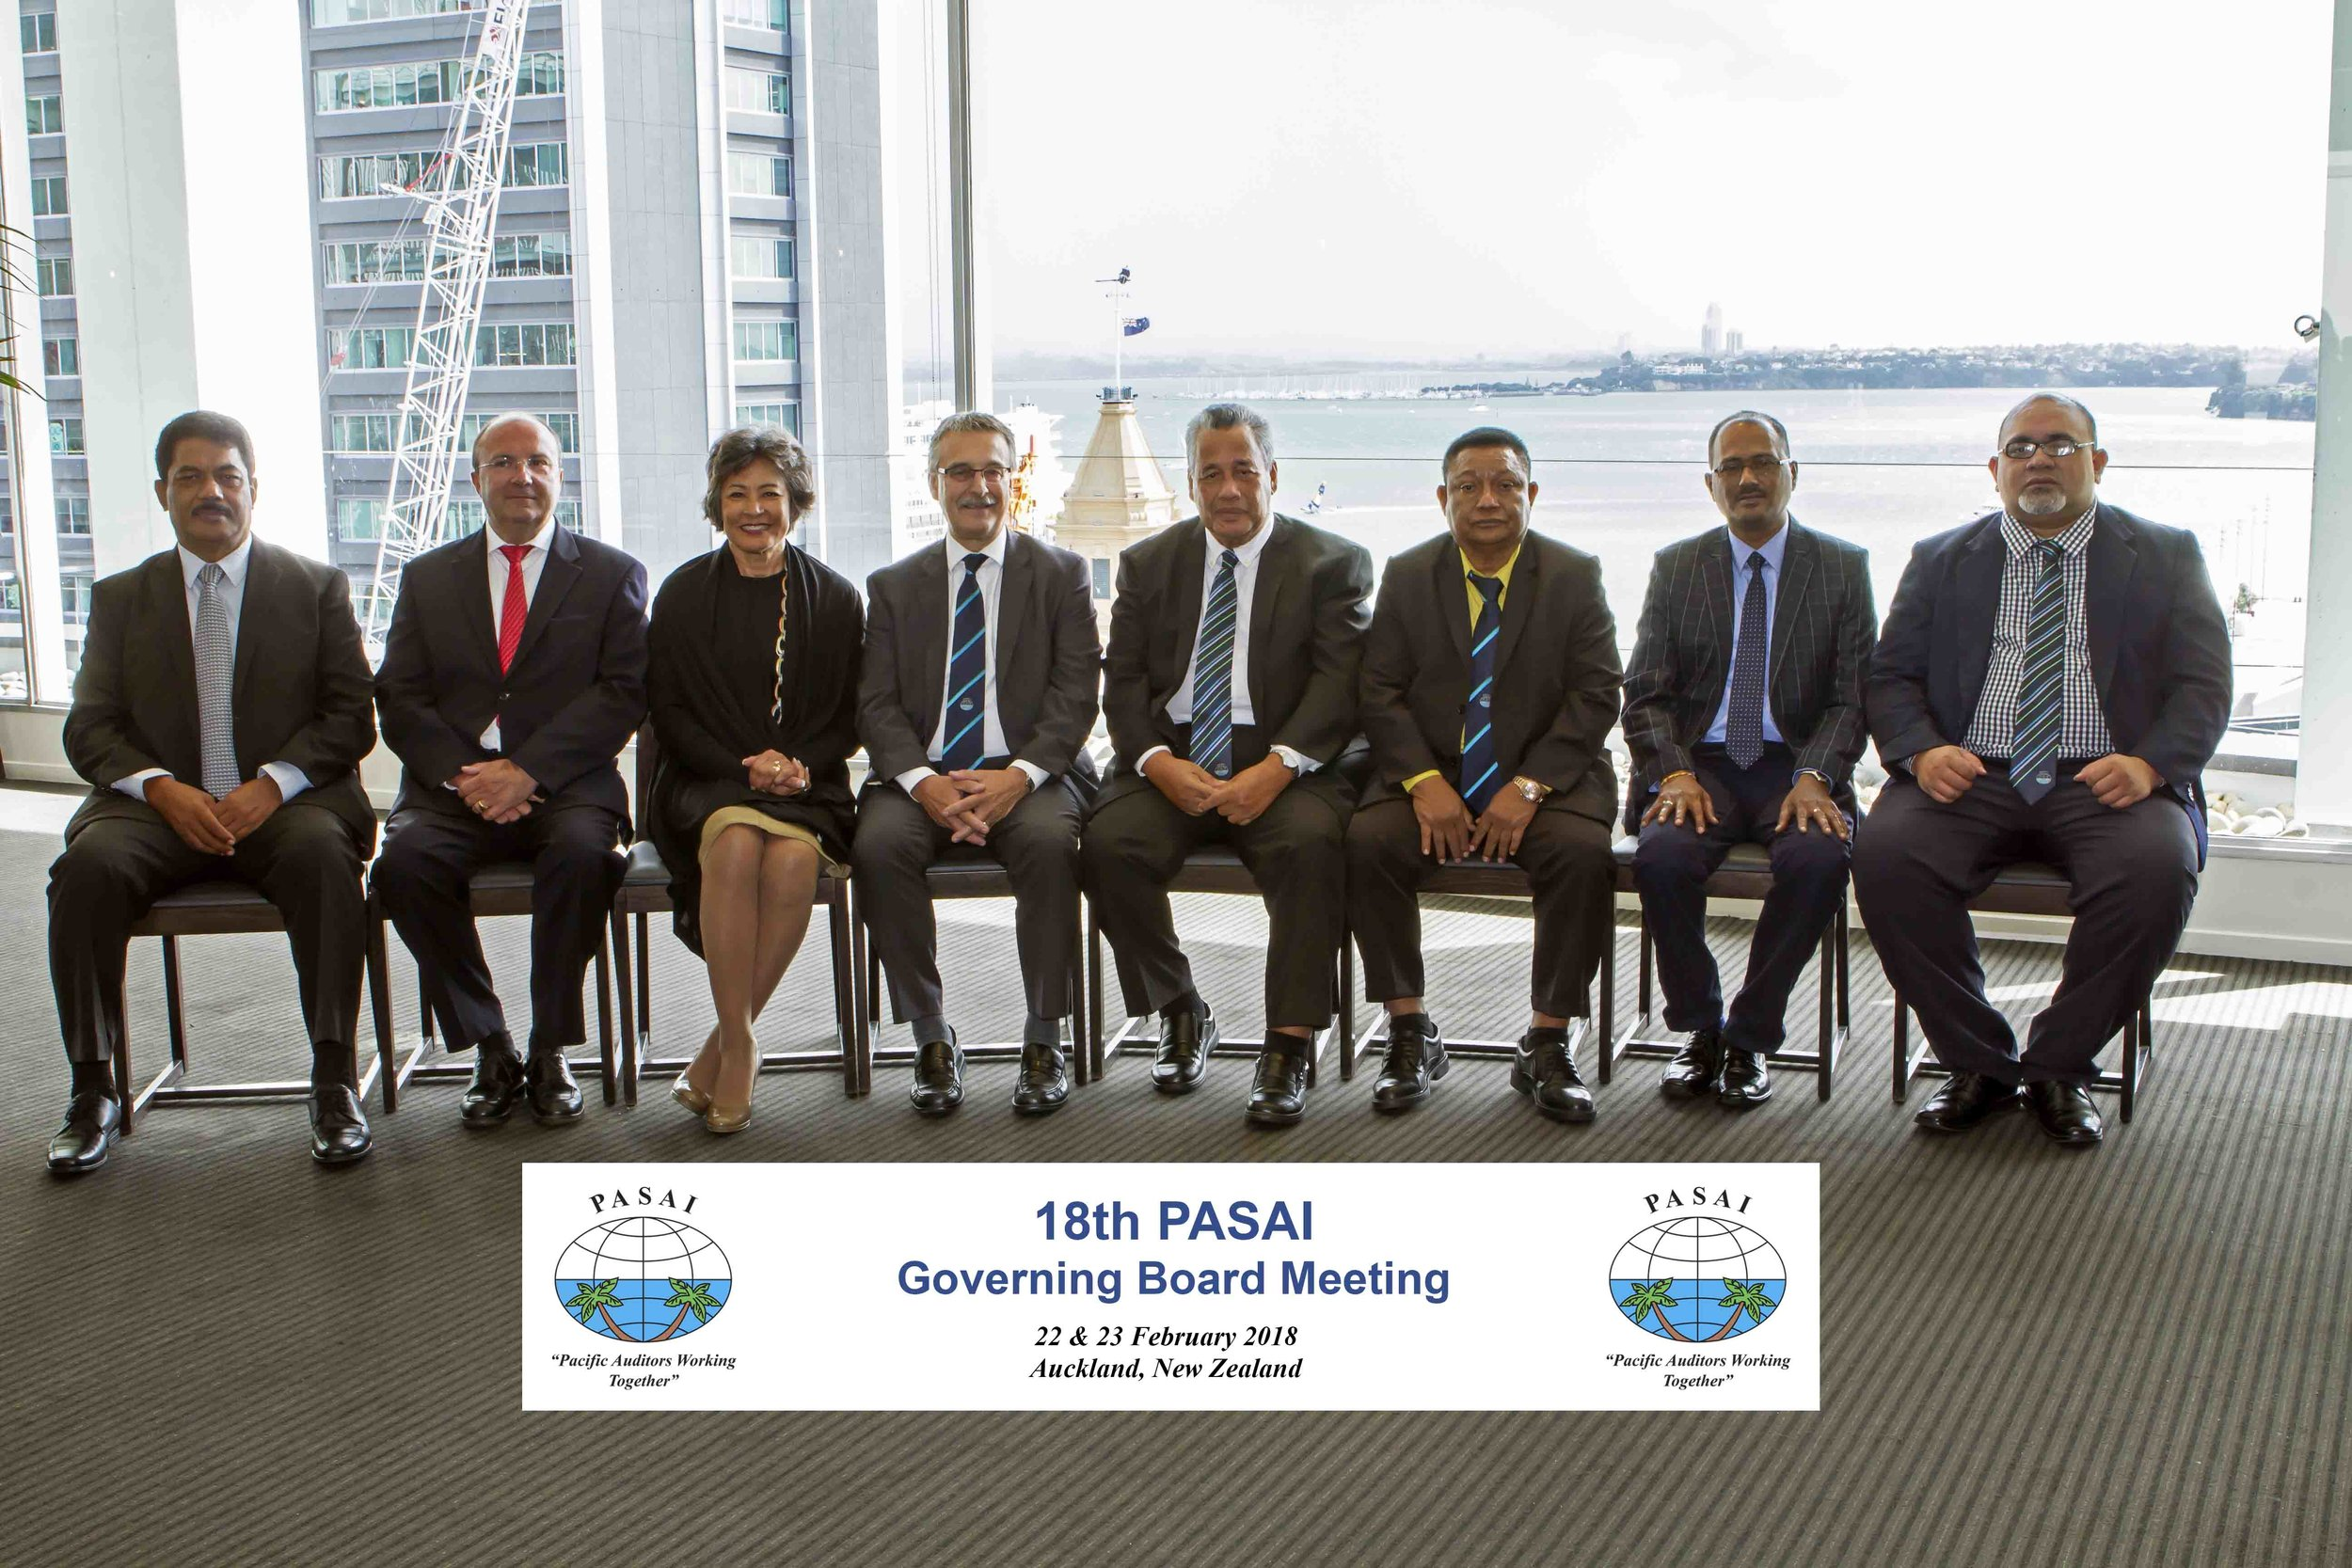 18th PASAI Governing Board Meeting, Auckland Feb 2017 (GB Members).jpg